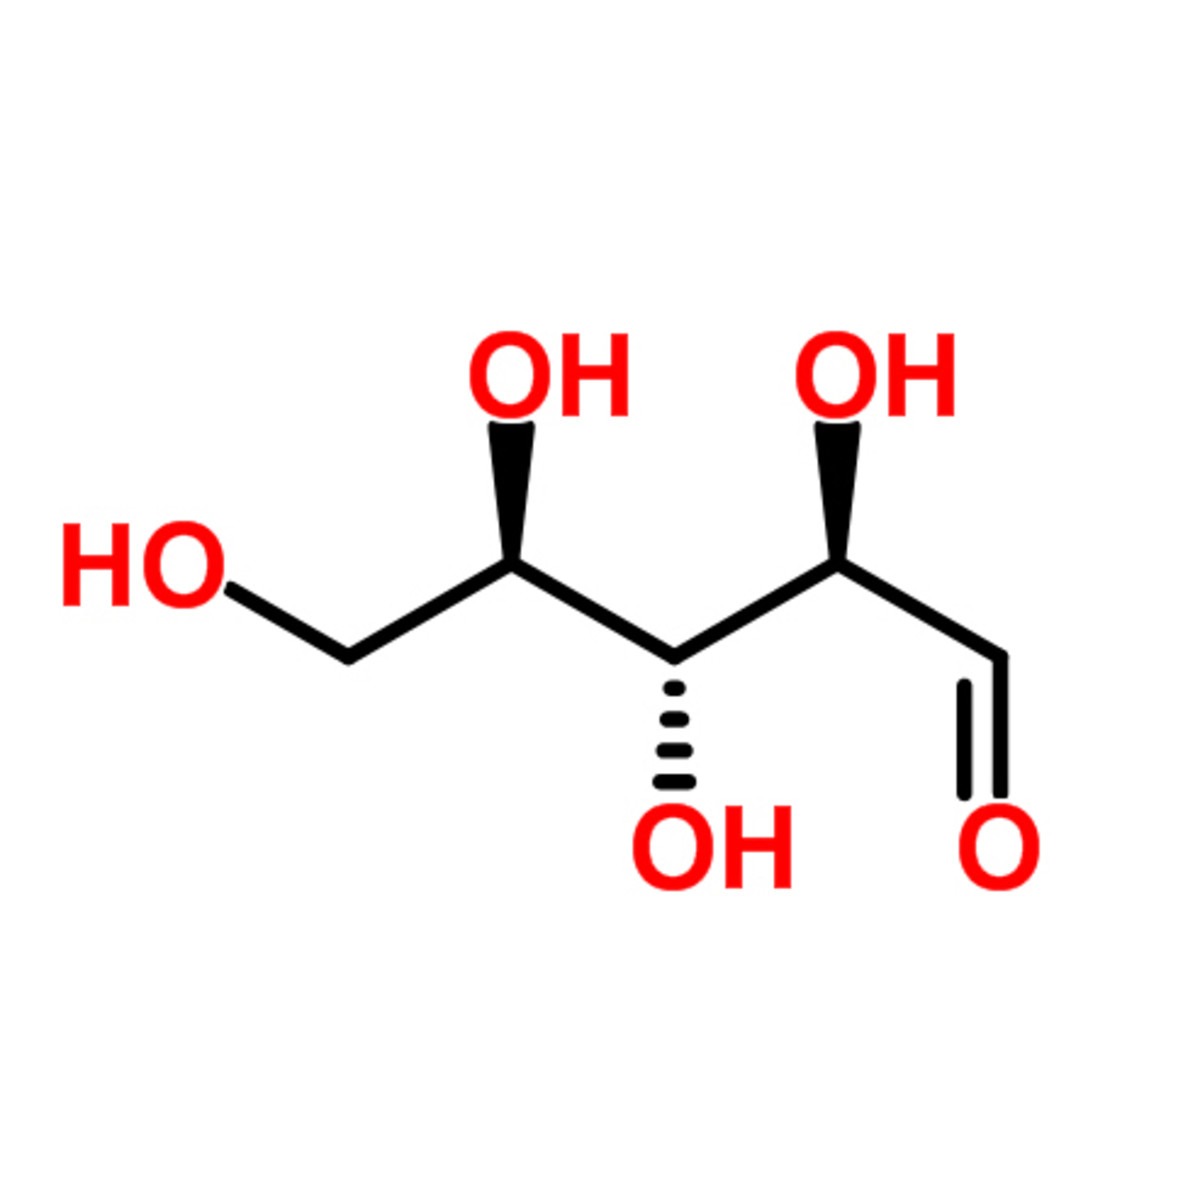 D-Ribose Chemical Structure (the image taken from ChemSpider.com)